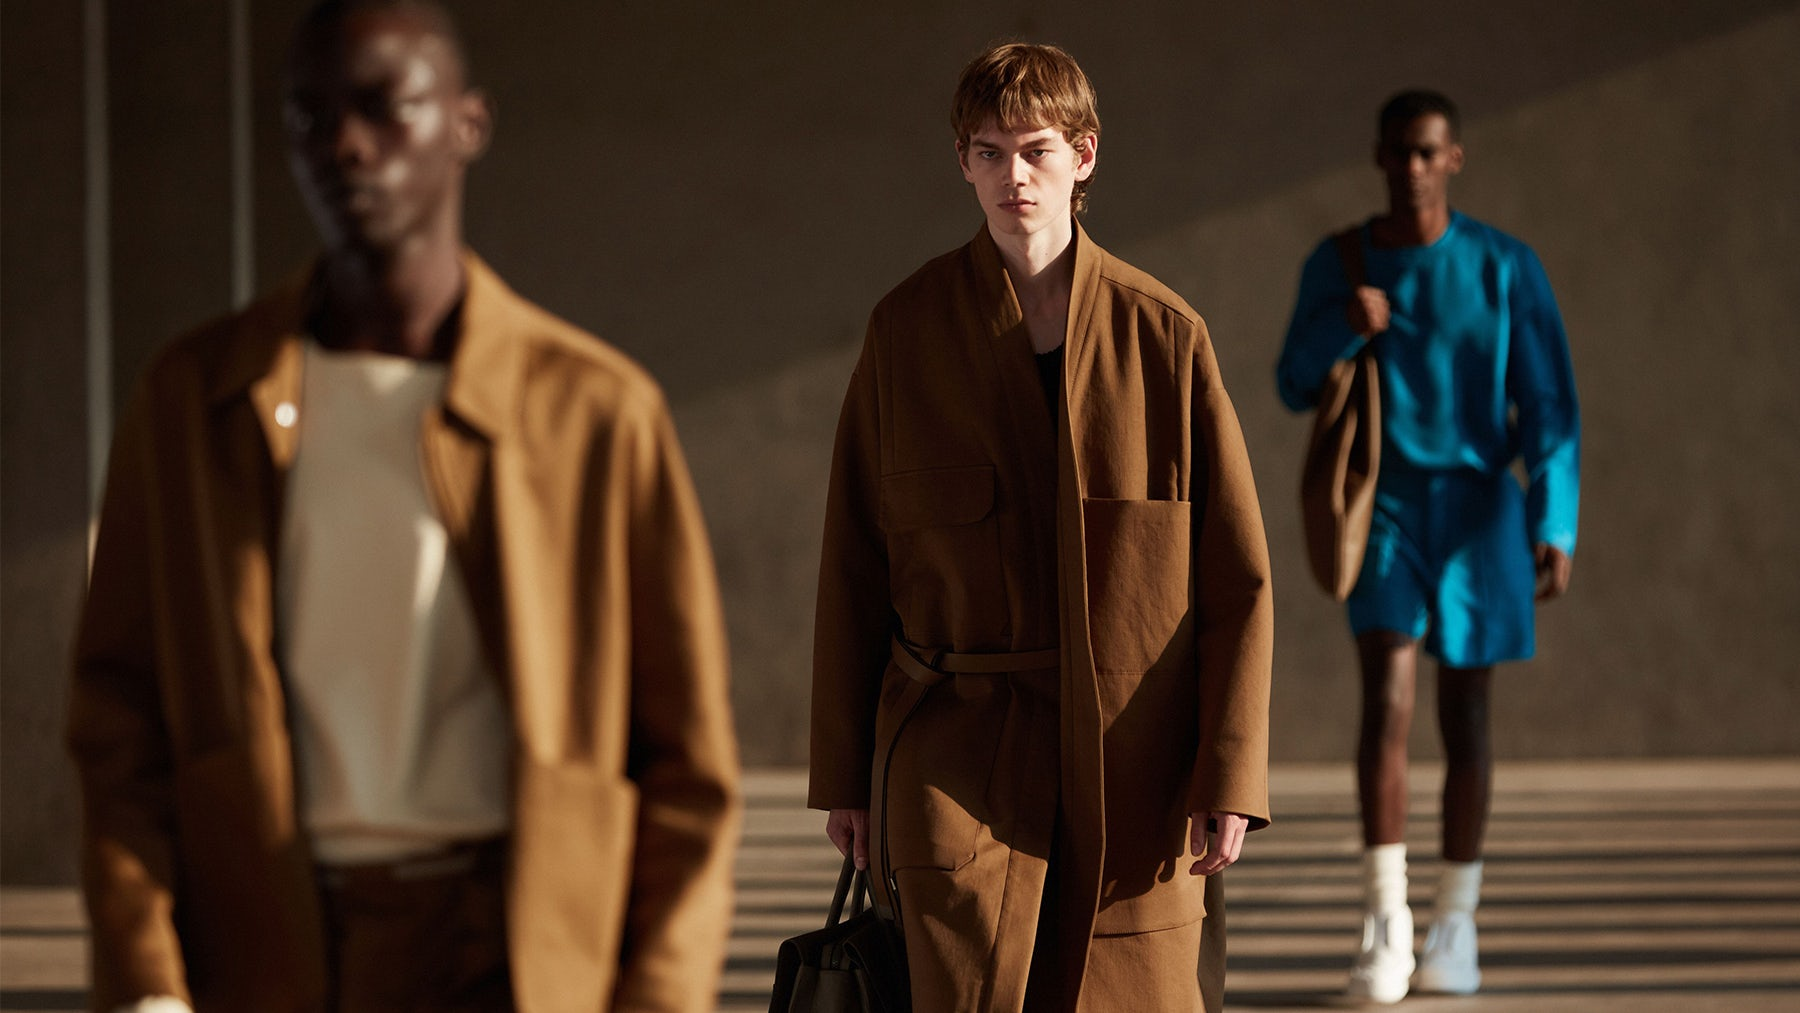 Ermenegildo Zegna is set to go public by combining with a New York-listed special purpose acquisition company (SPAC) in a deal that values the Italian luxury company at $3.2 billion. Ermenegildo Zegna.